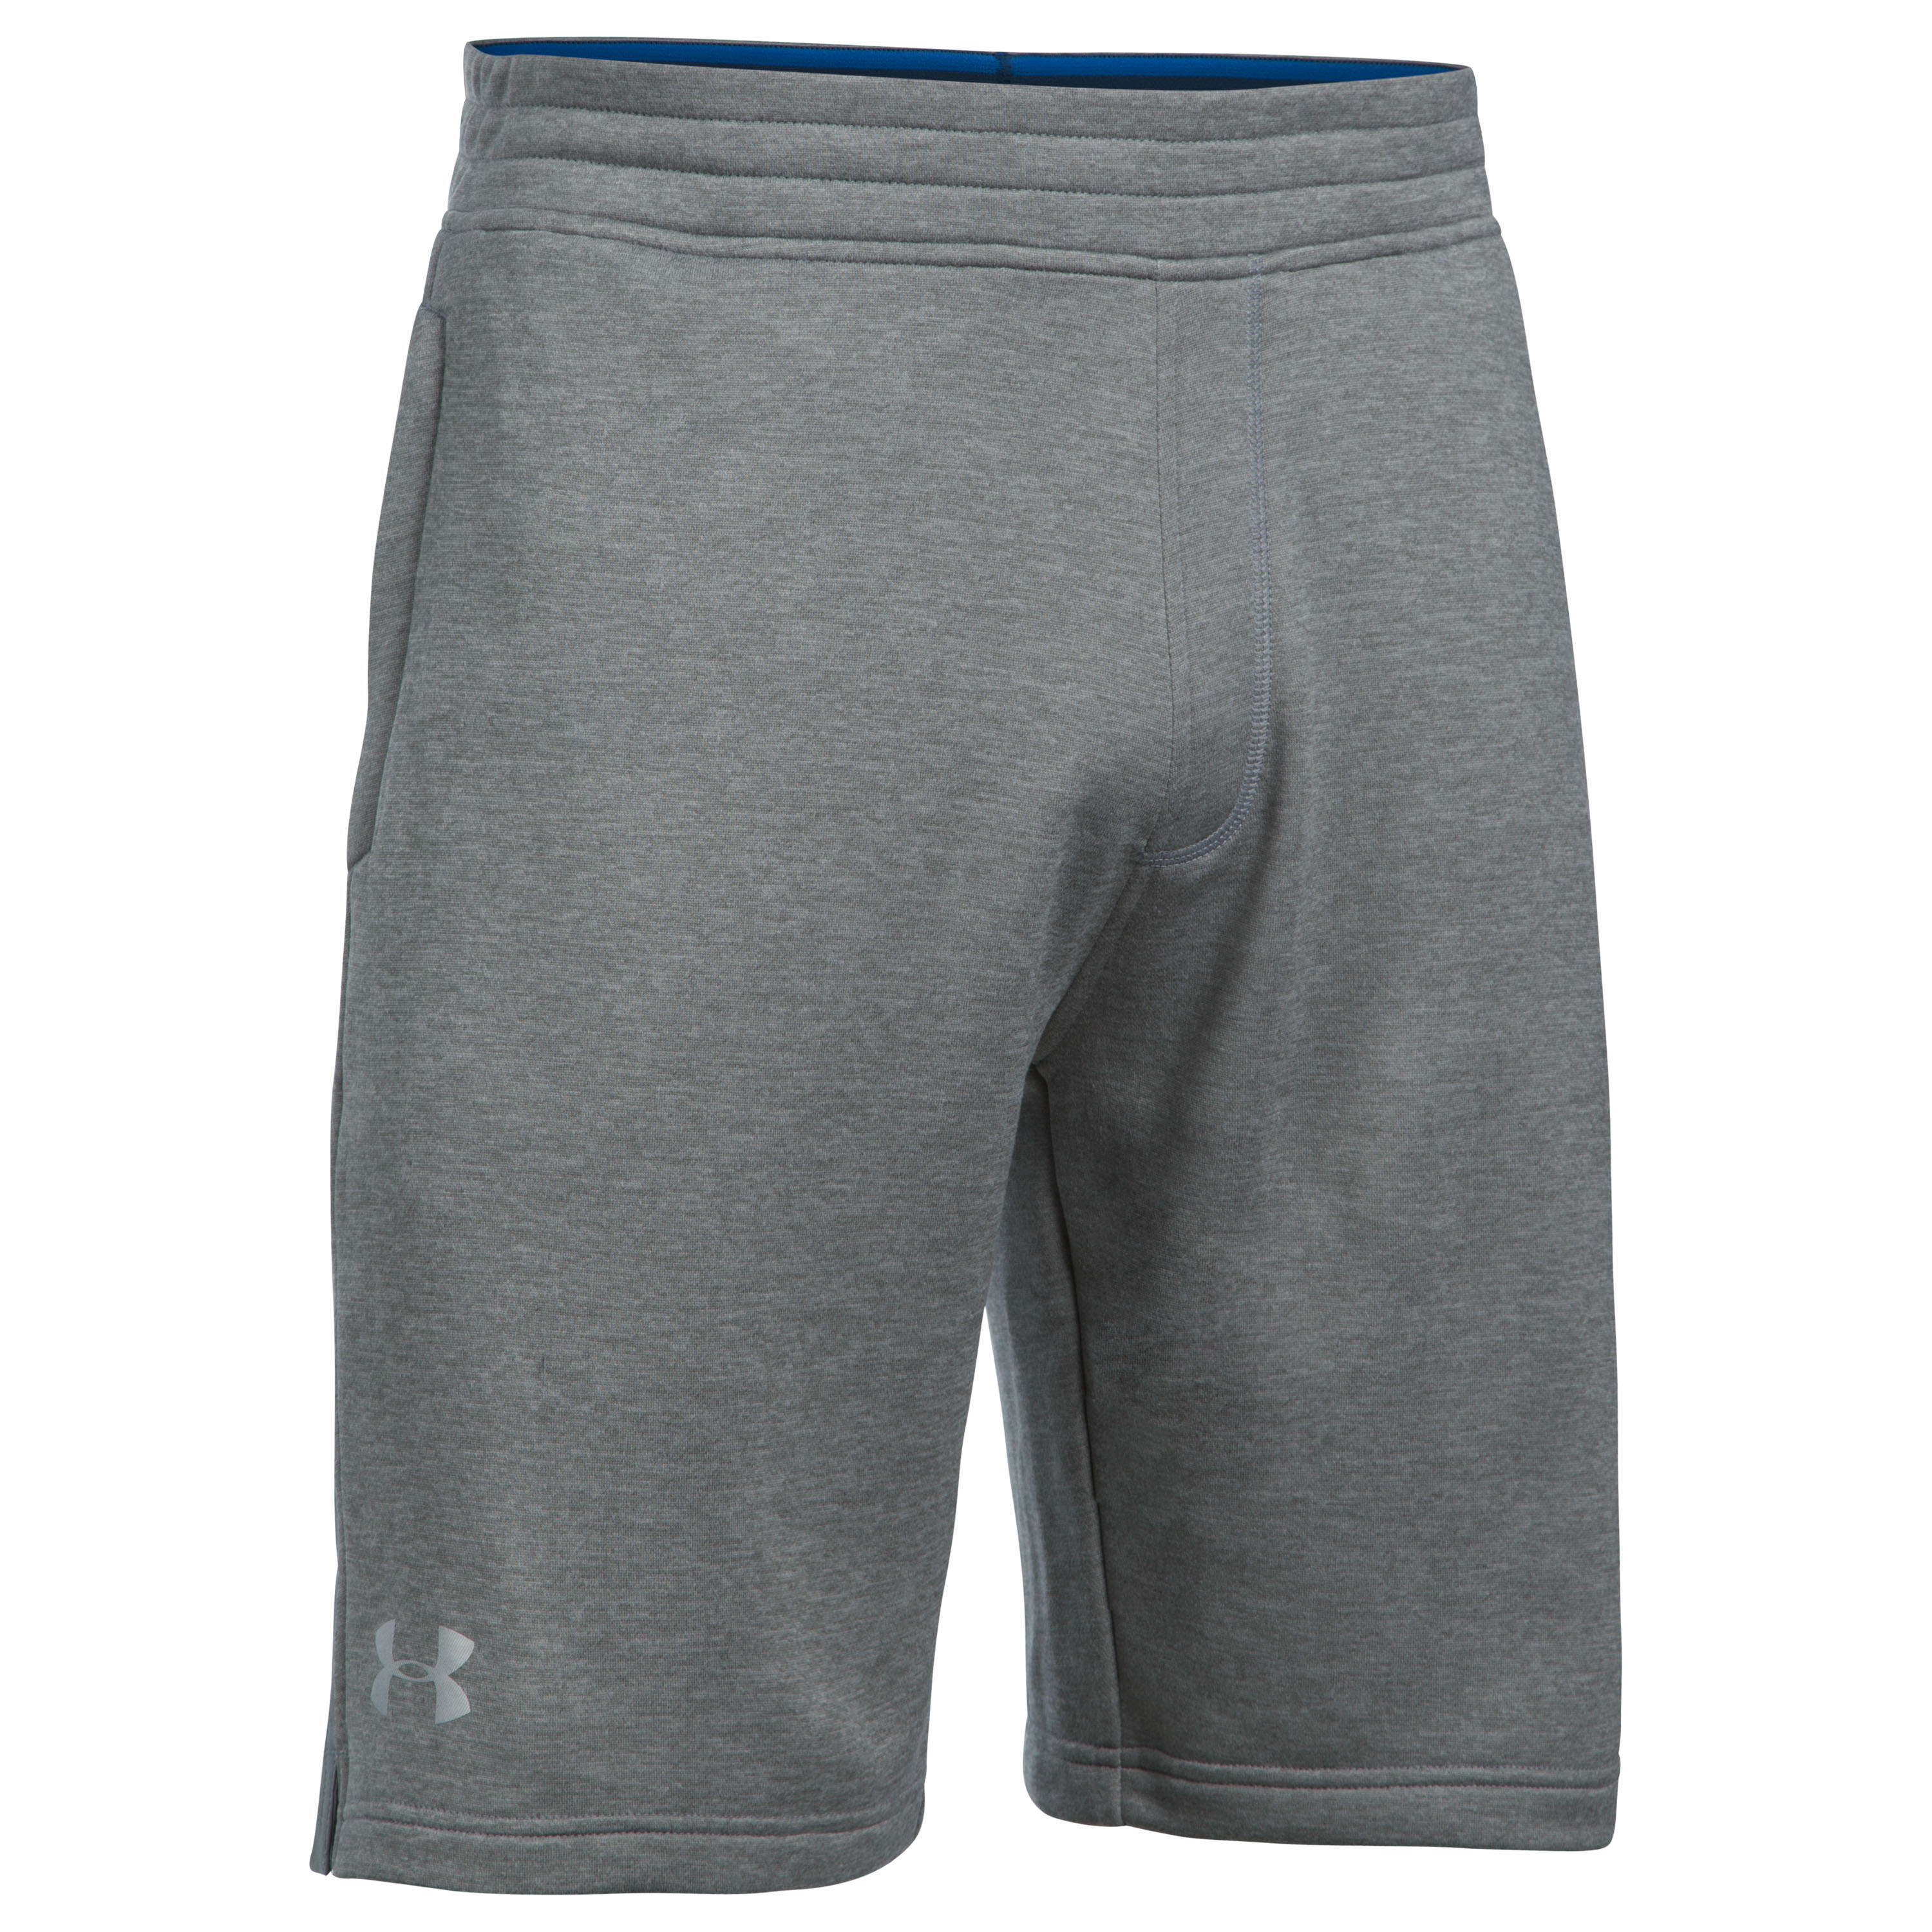 Under Armour Fitness Short Tech Terry gray